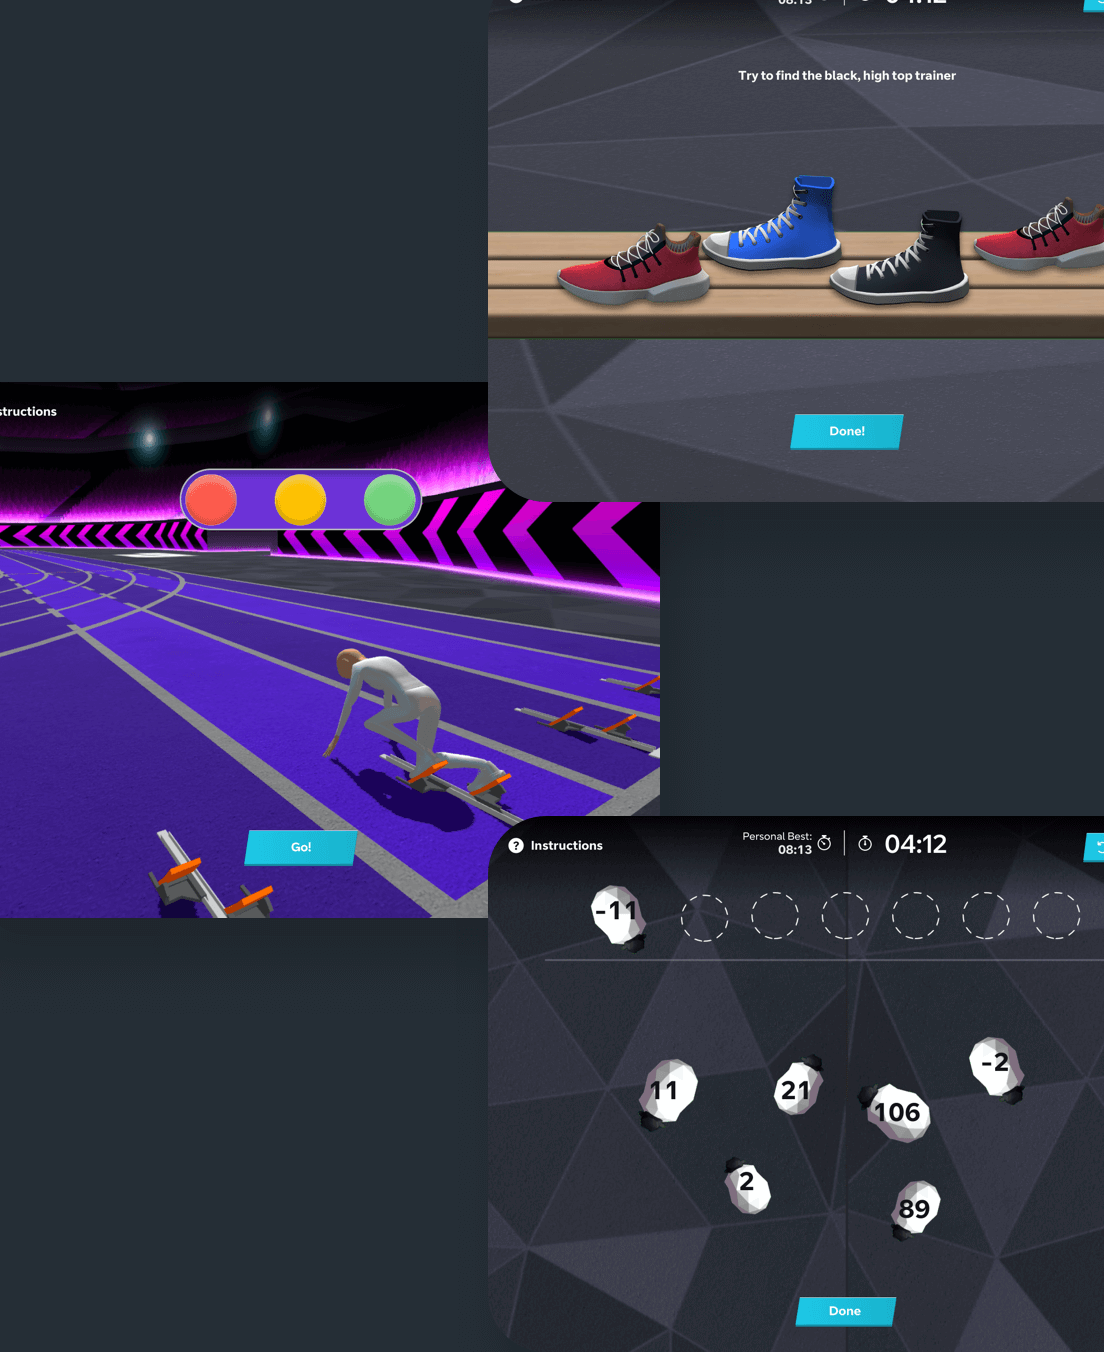 A collection of the mind training minigames